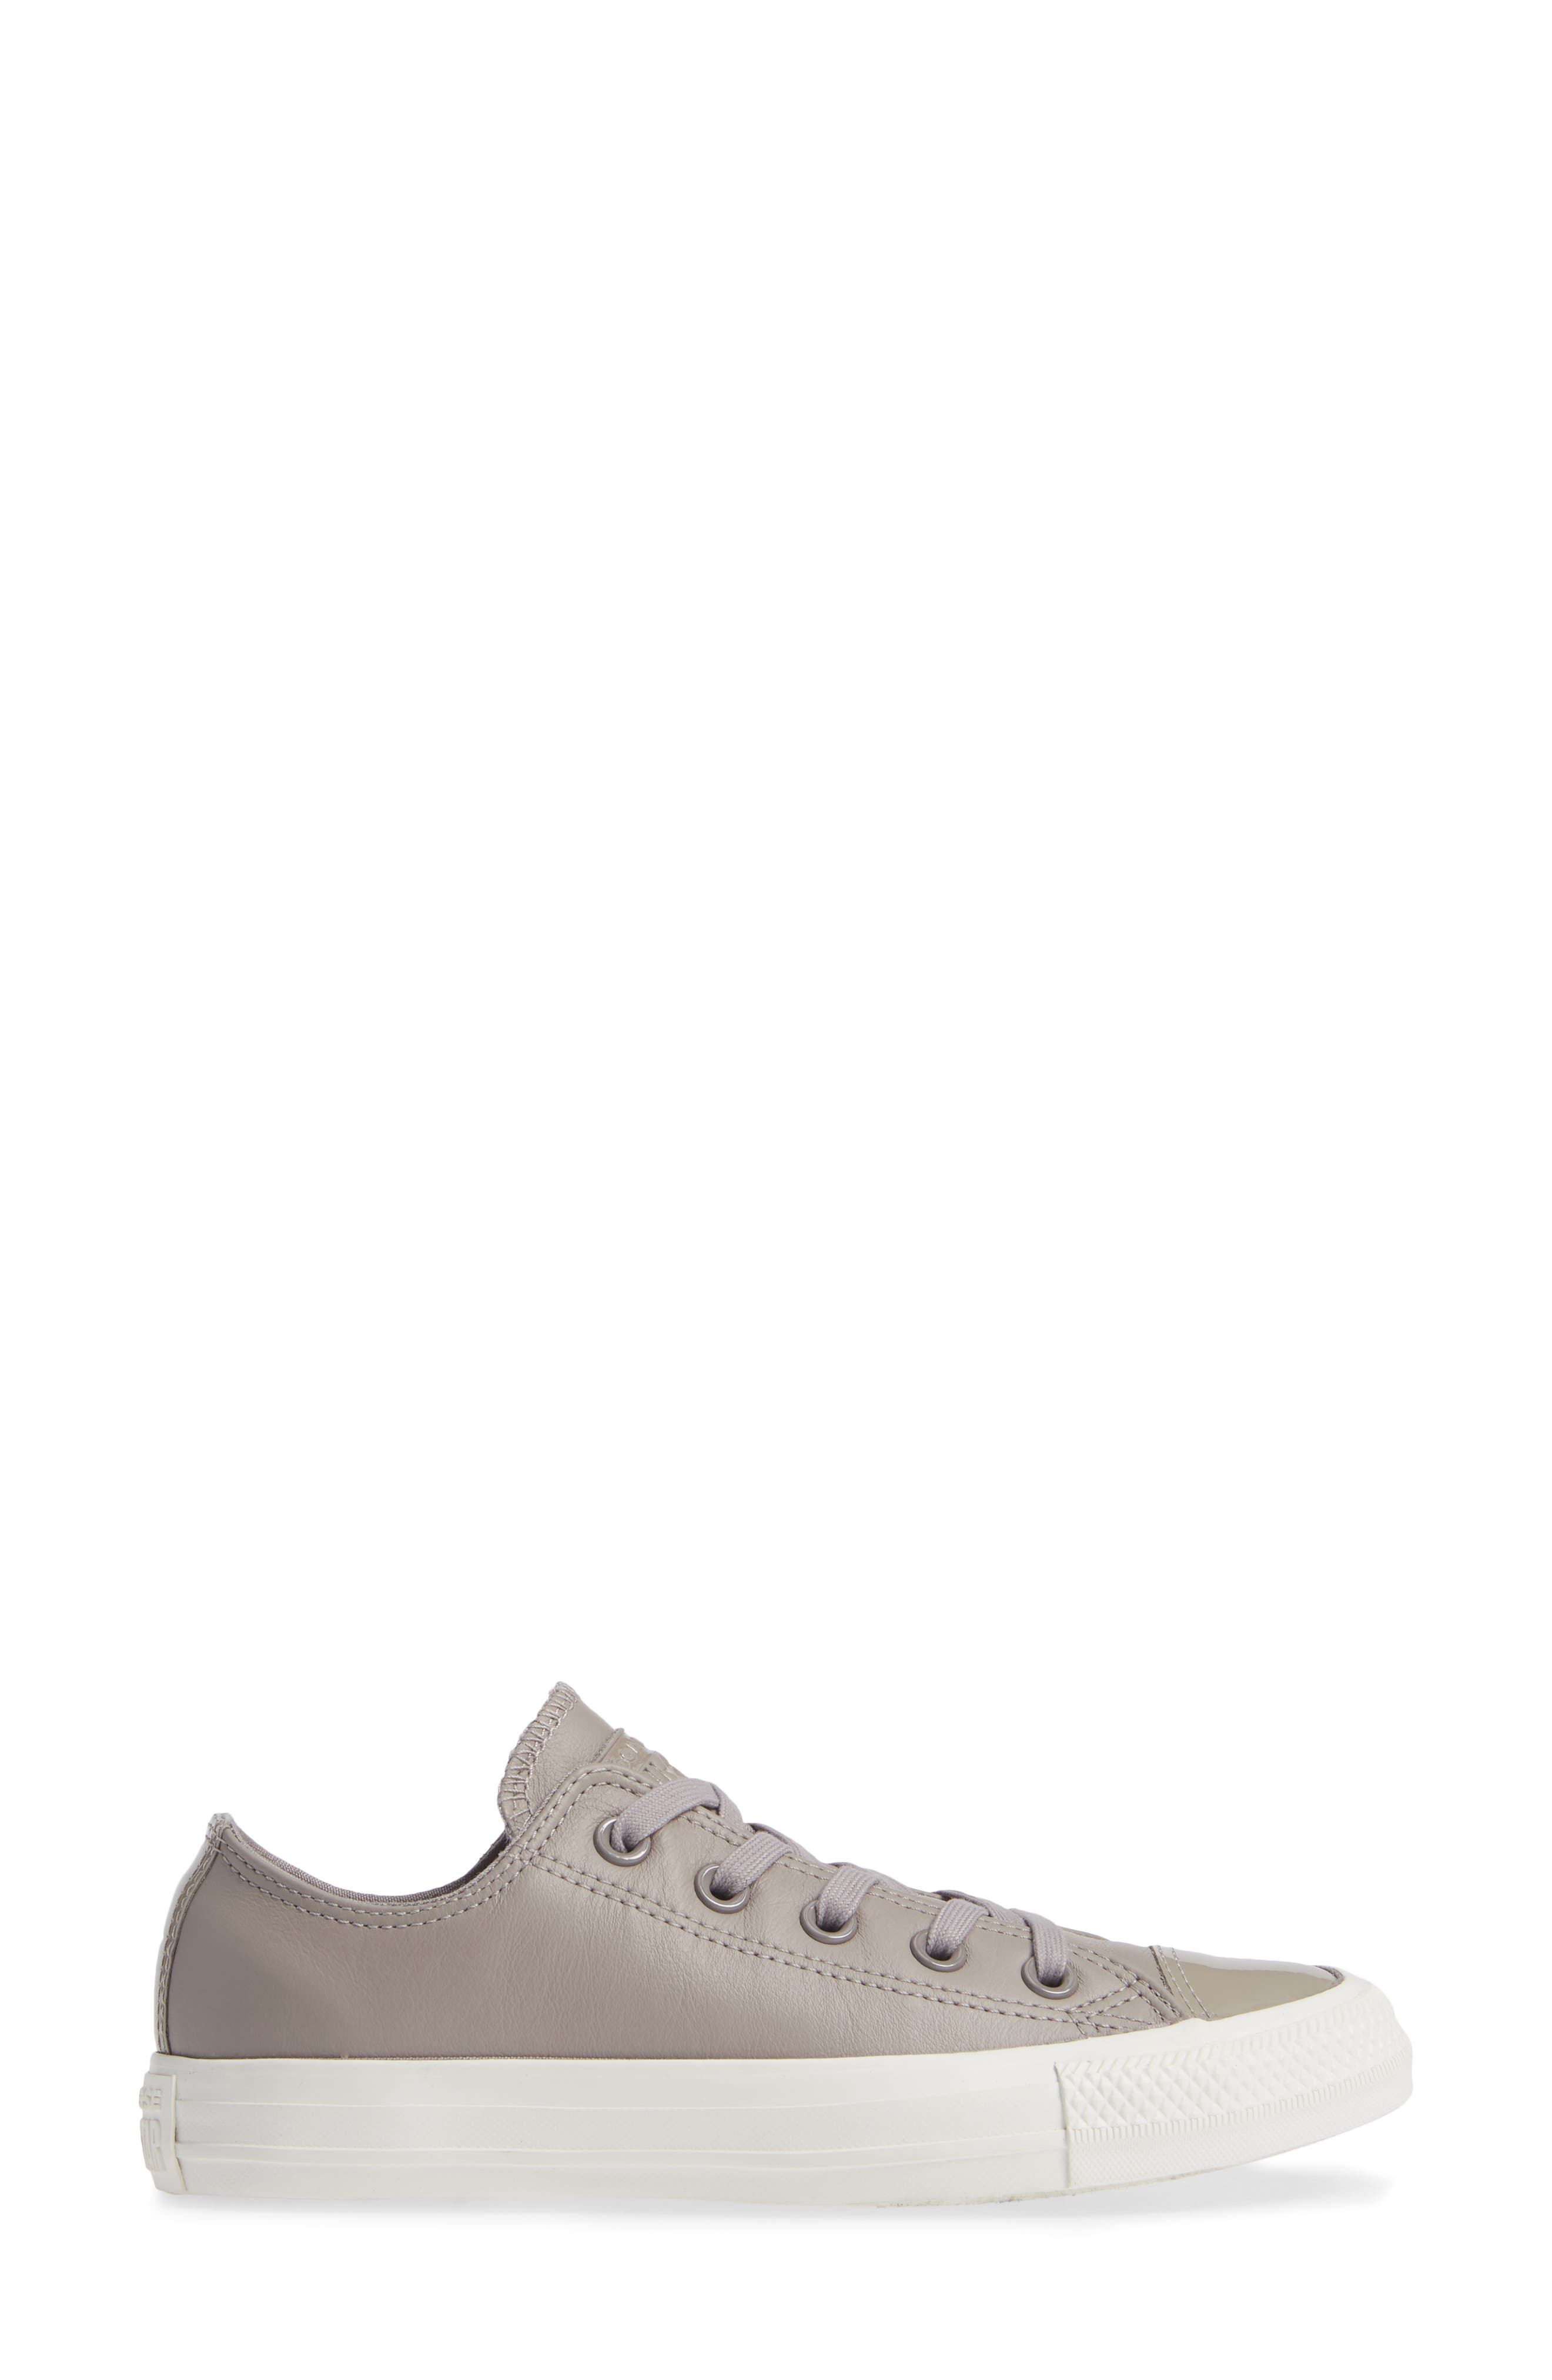 CONVERSE,                             All Star<sup>®</sup> Leather Patent Low Top Sneaker,                             Alternate thumbnail 3, color,                             020